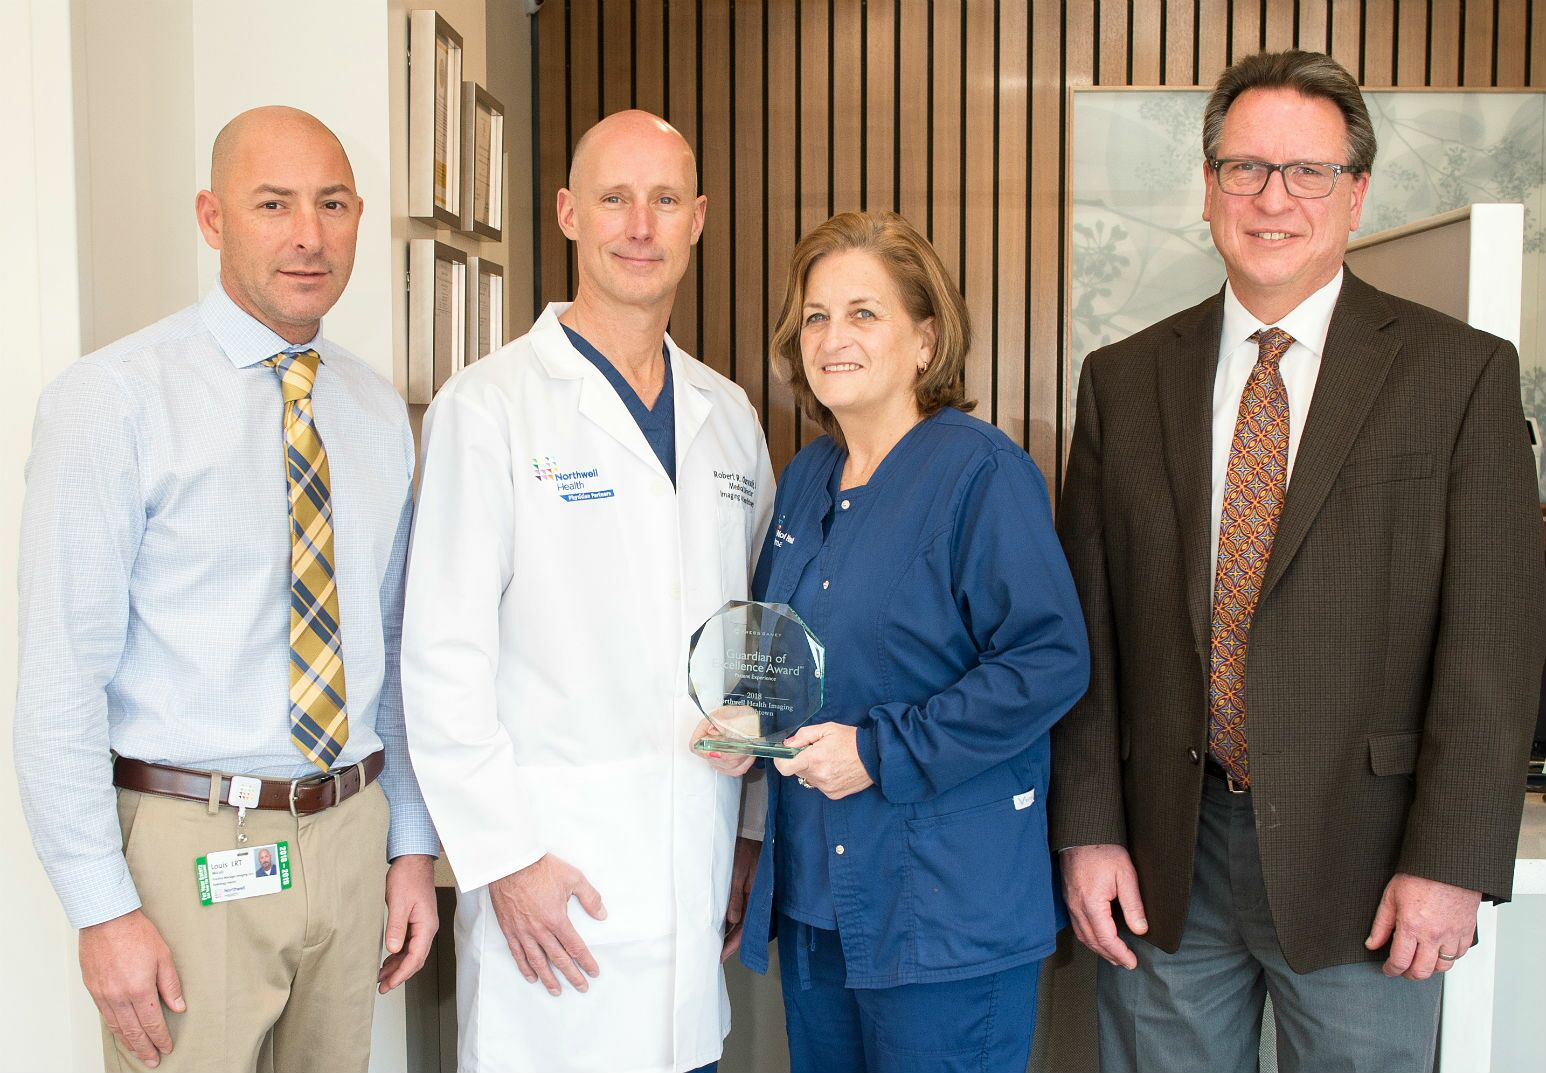 Northwell Health Imaging at Smithtown's Louis Micelli; Robert Ozsvath, MD; Lori Espina, RN; and William Brostek.